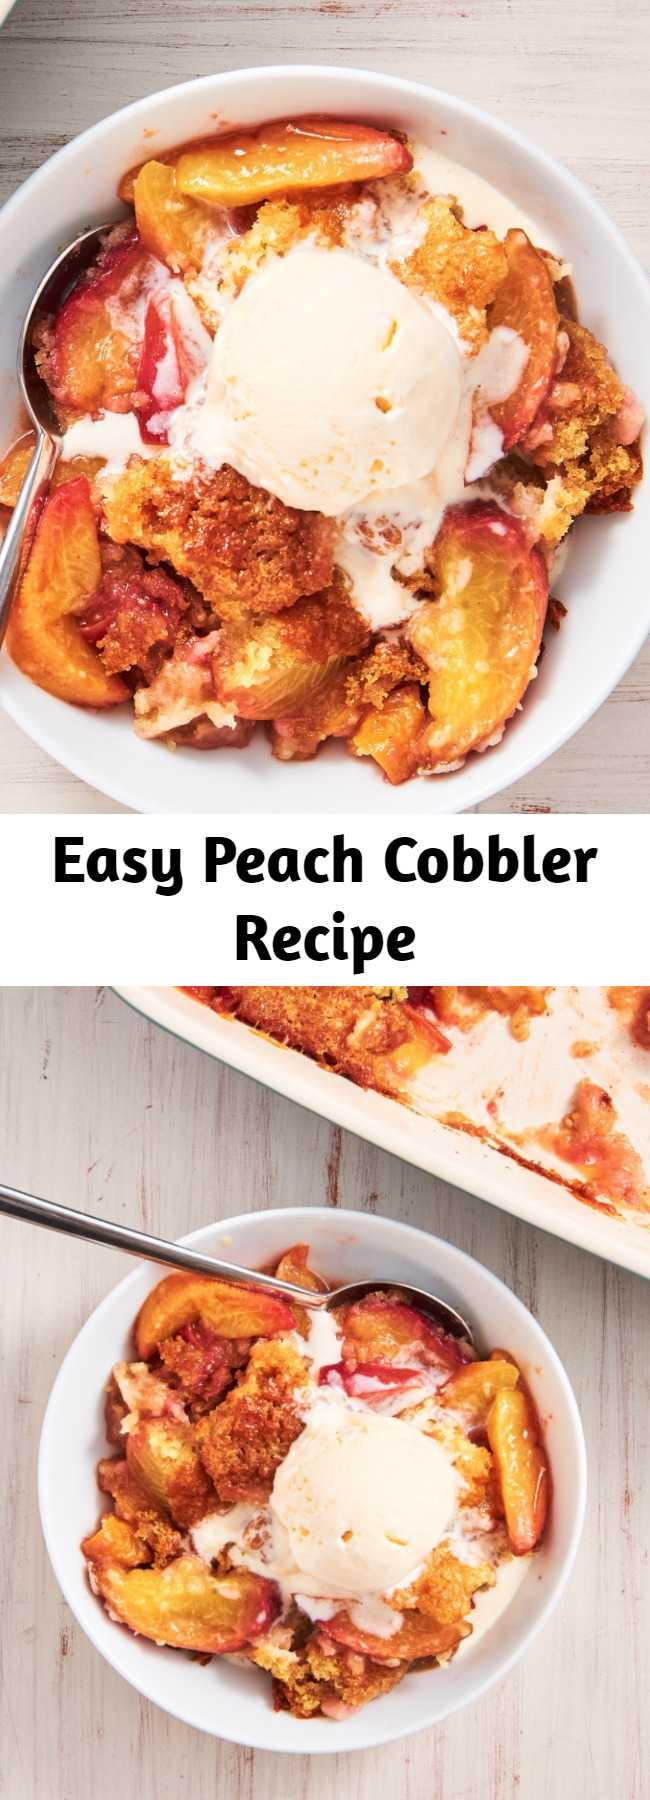 Easy Peach Cobbler Recipe - Peach Cobbler has an irresistible crackly-on-the-outside, pillowy-on-the-inside topping that will win everyone over this summer. And it's so easy to throw together for a last minute fourth celebration.